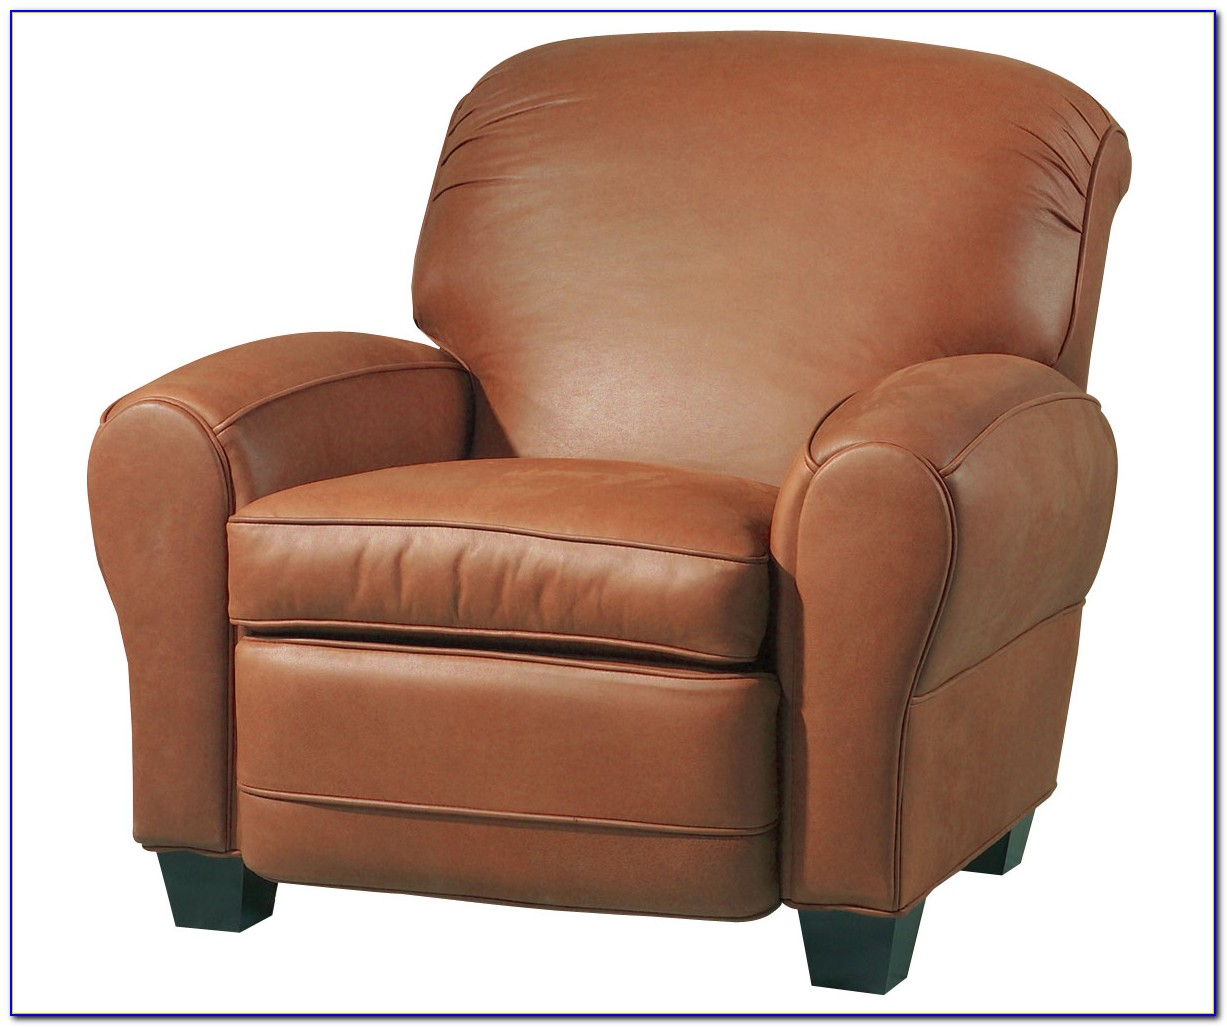 Paris Club Chair Recliners